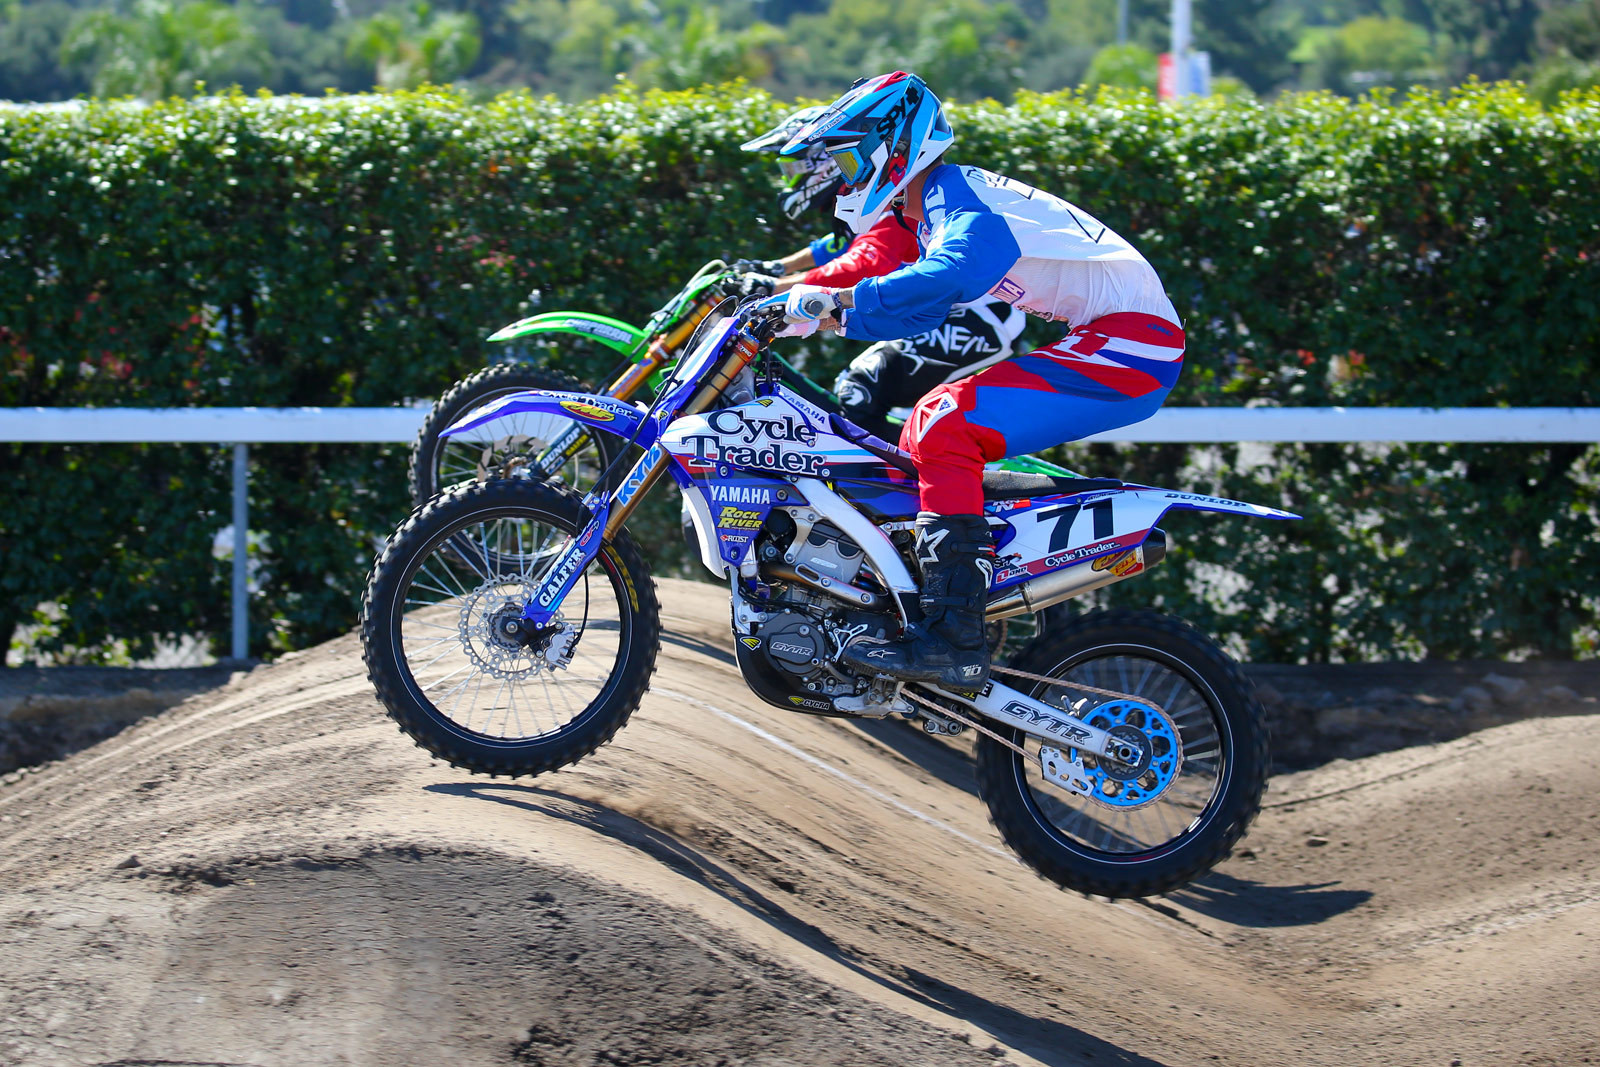 Kyle Partridge and Kyle Chisholm - Photo Blast: Red Bull Straight Rhythm - Motocross Pictures - Vital MX